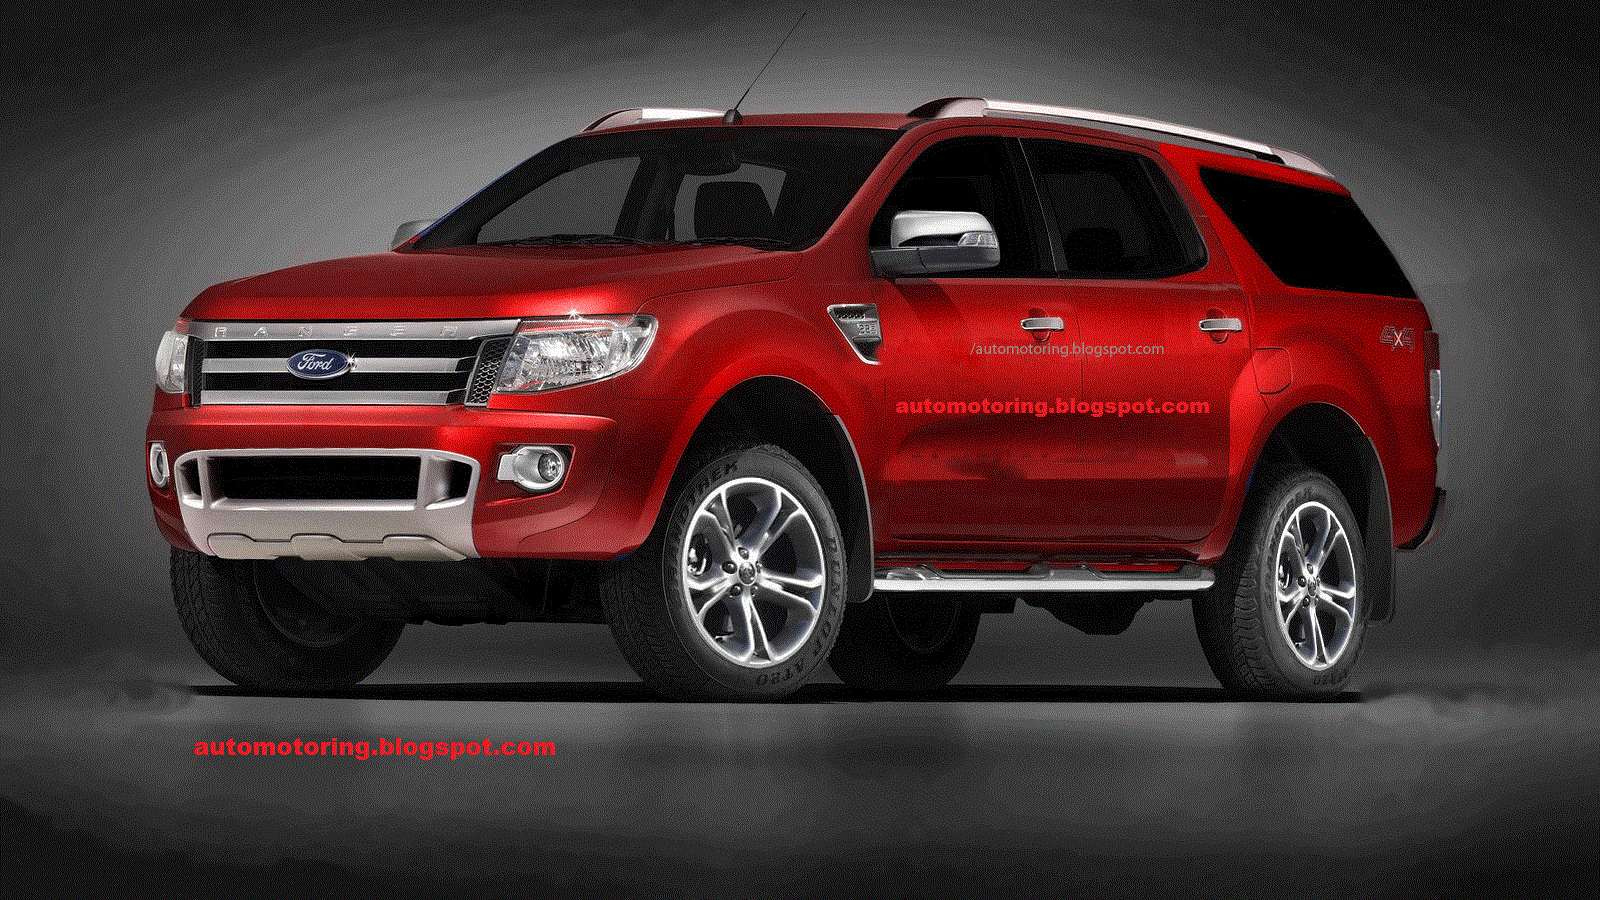 Ford everest 2014 photo - 3